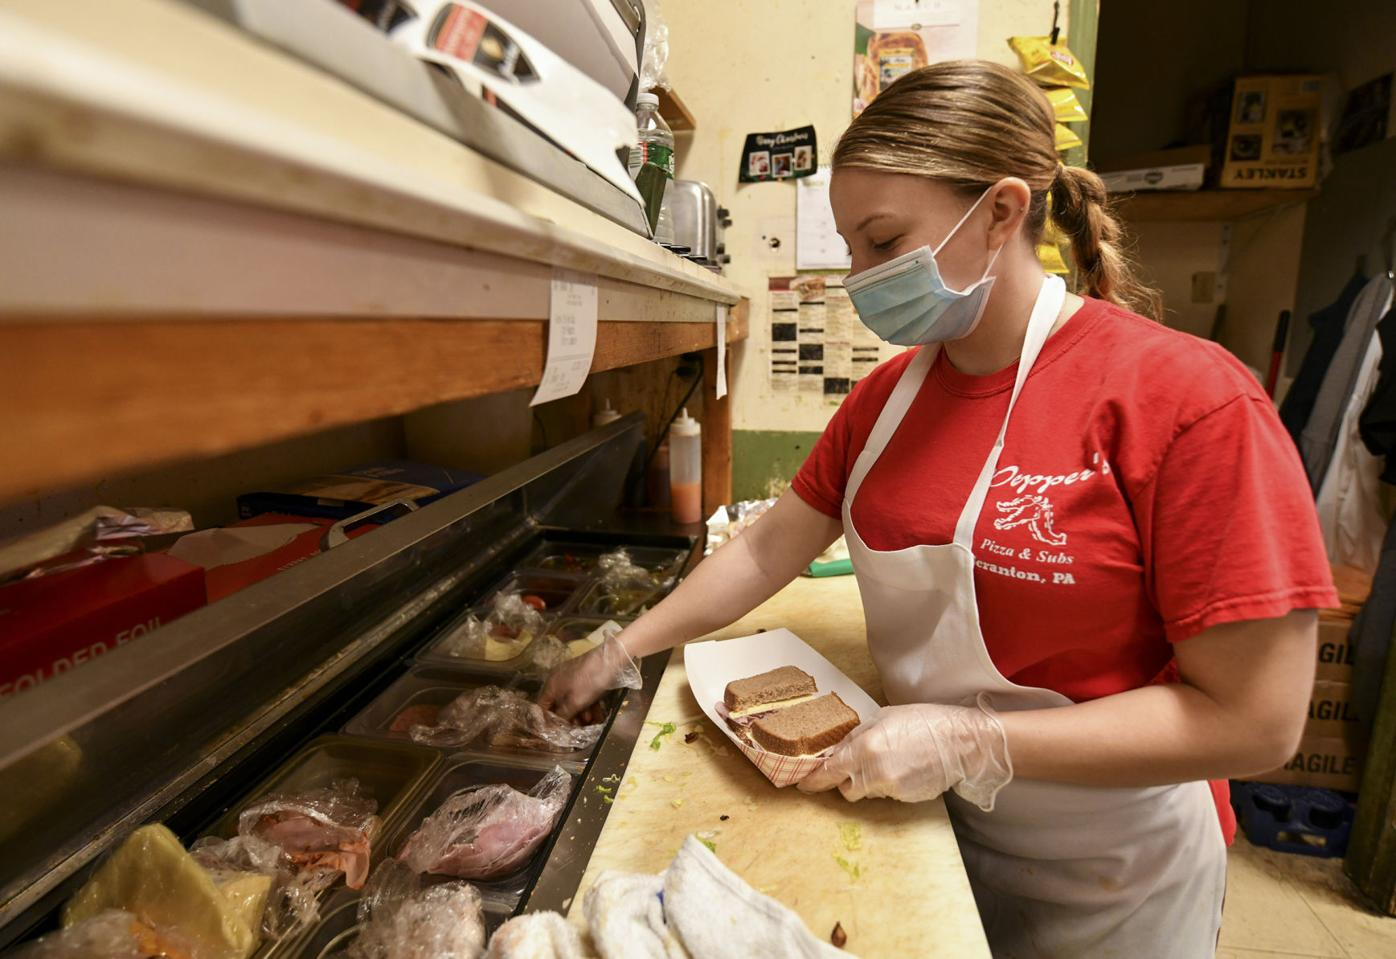 Pizzerias facing staffing shortages